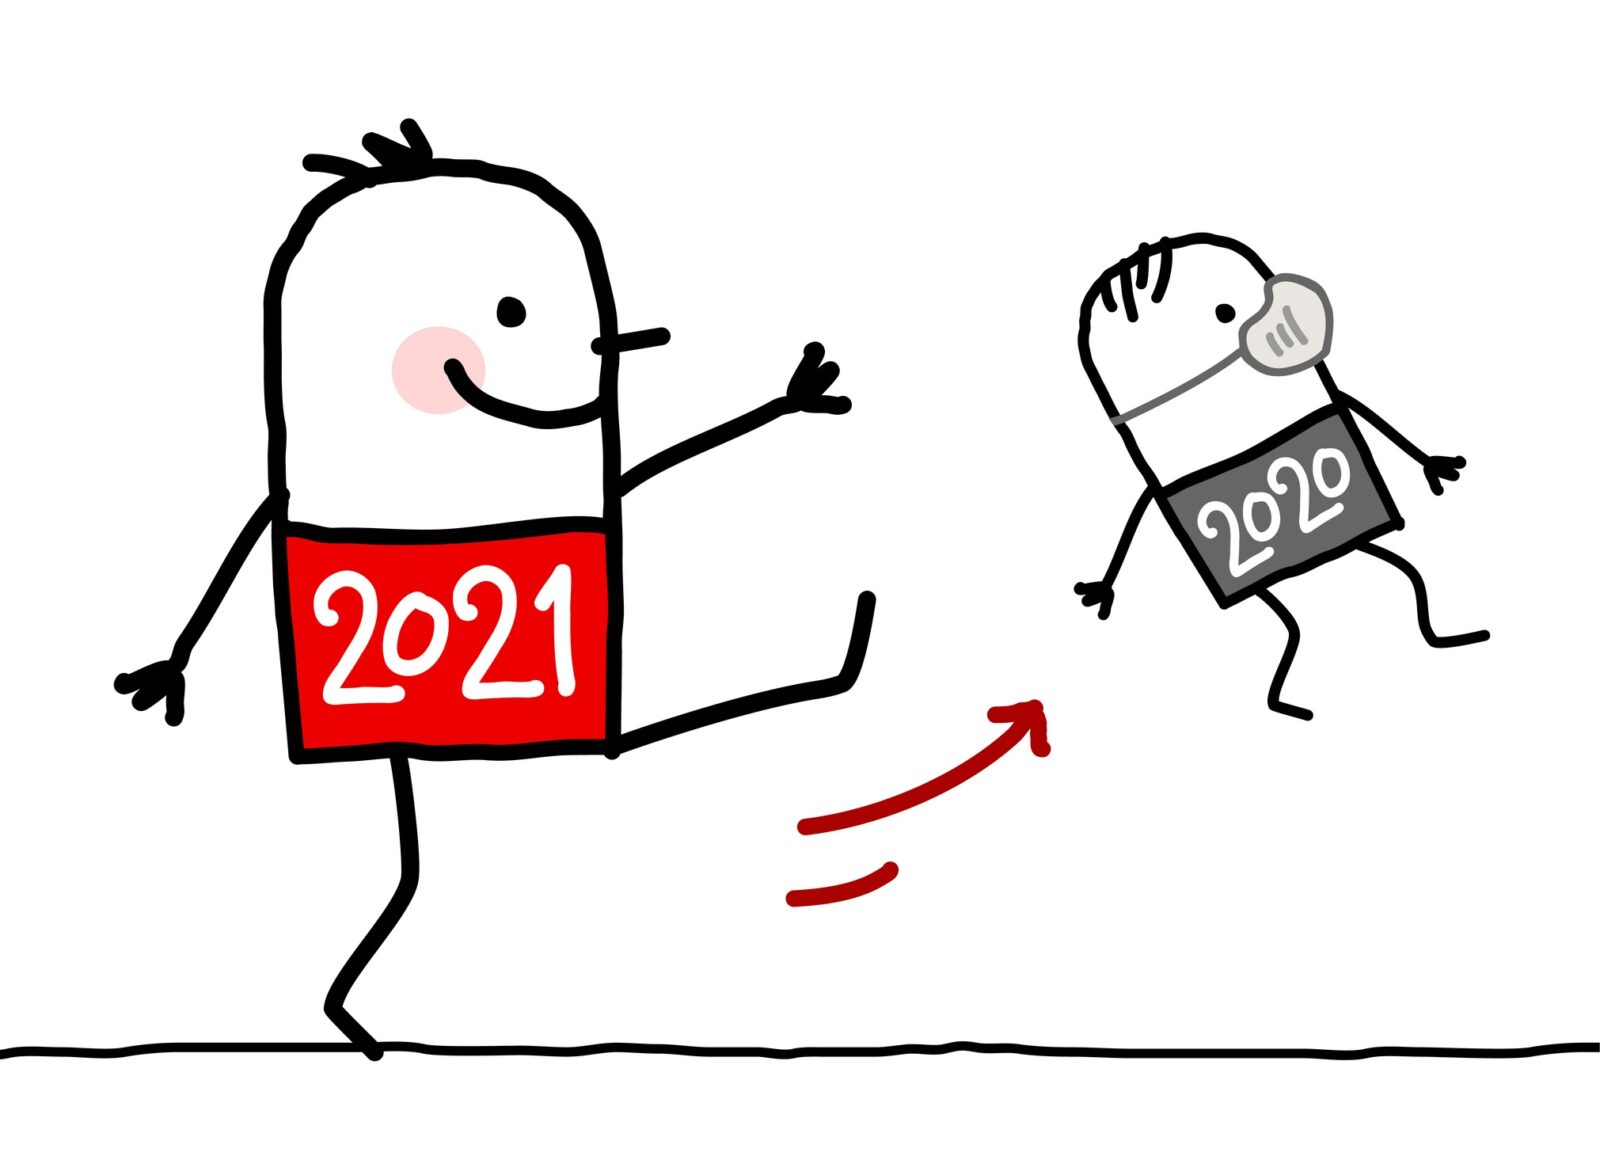 cartoon figure 2021 kicking cartoon figure 2020 with mask